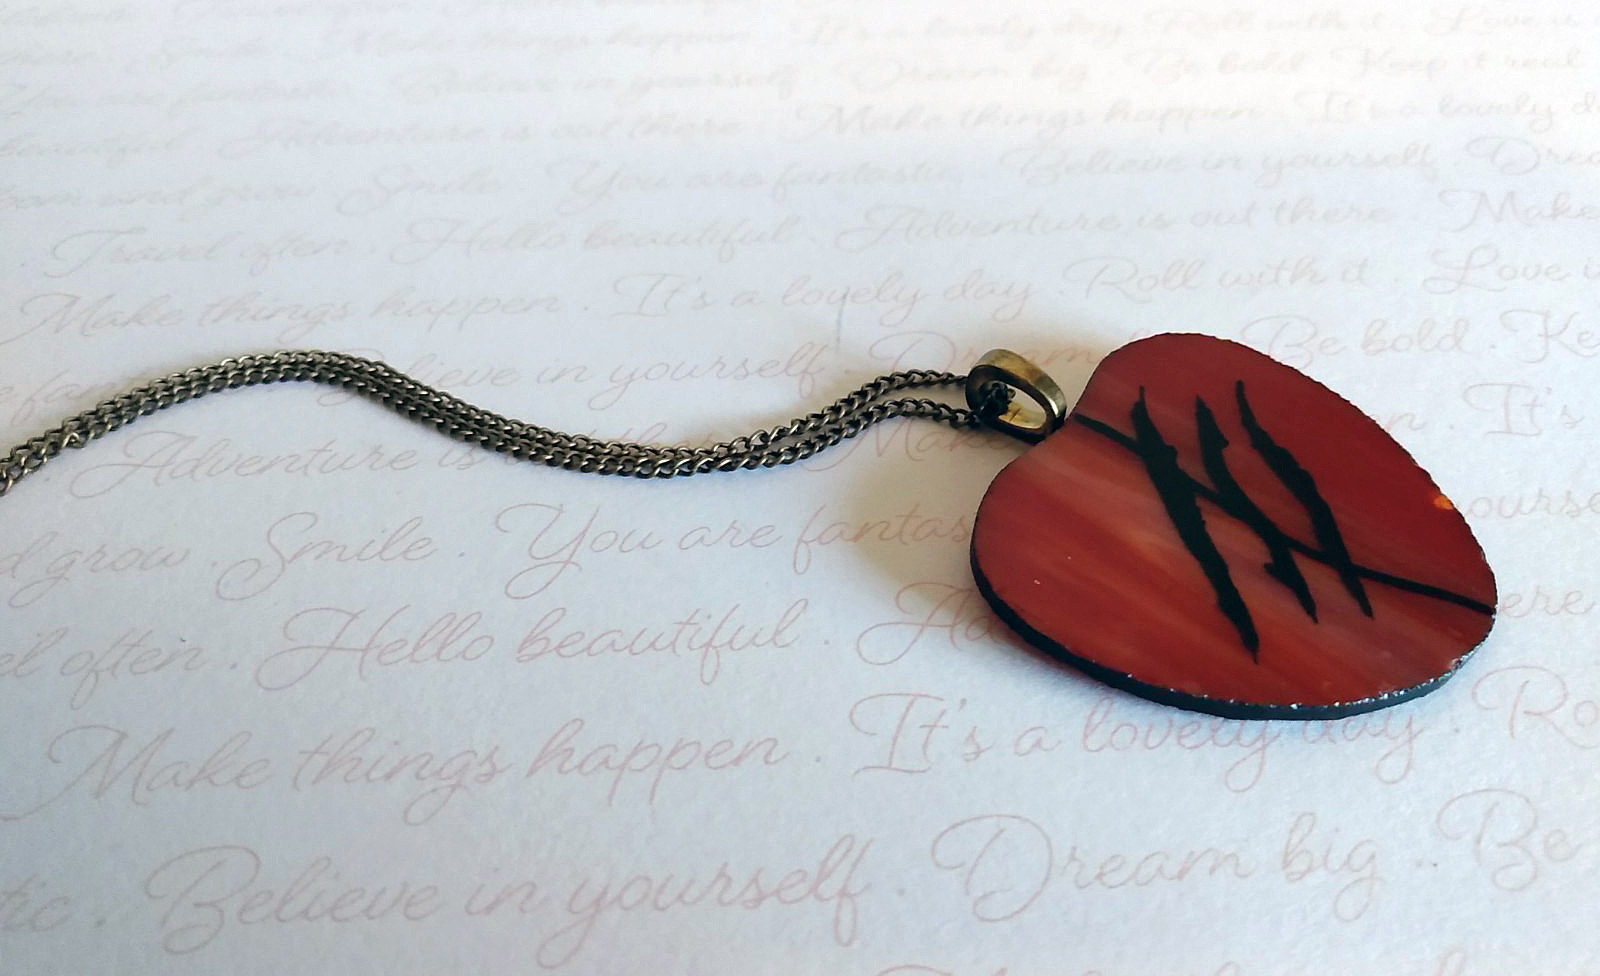 Slashed Heart Necklace.jpg